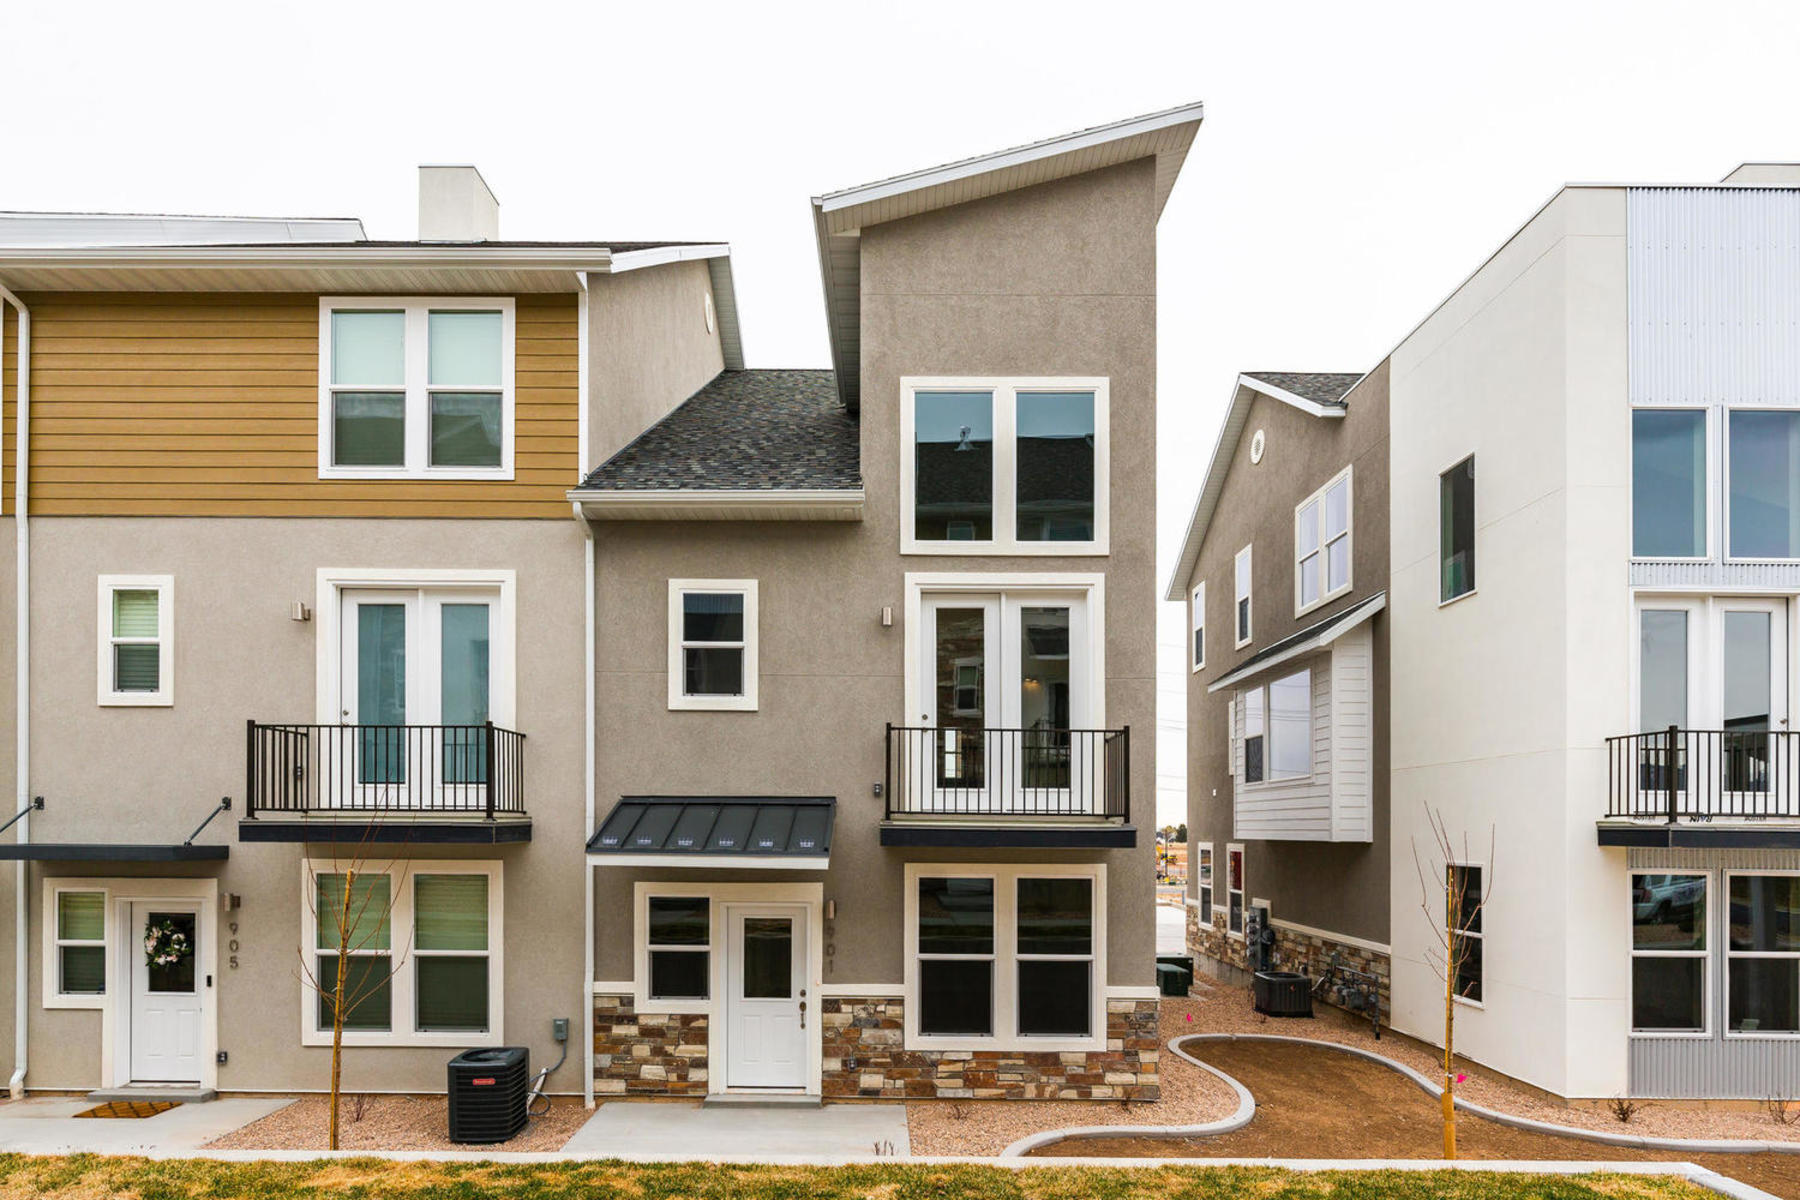 townhouses için Satış at The Tribeca Unit 35 At The Ridge At Spanish Fork 894 South 2560 East, #35, Spanish Fork, Utah 84660 Amerika Birleşik Devletleri